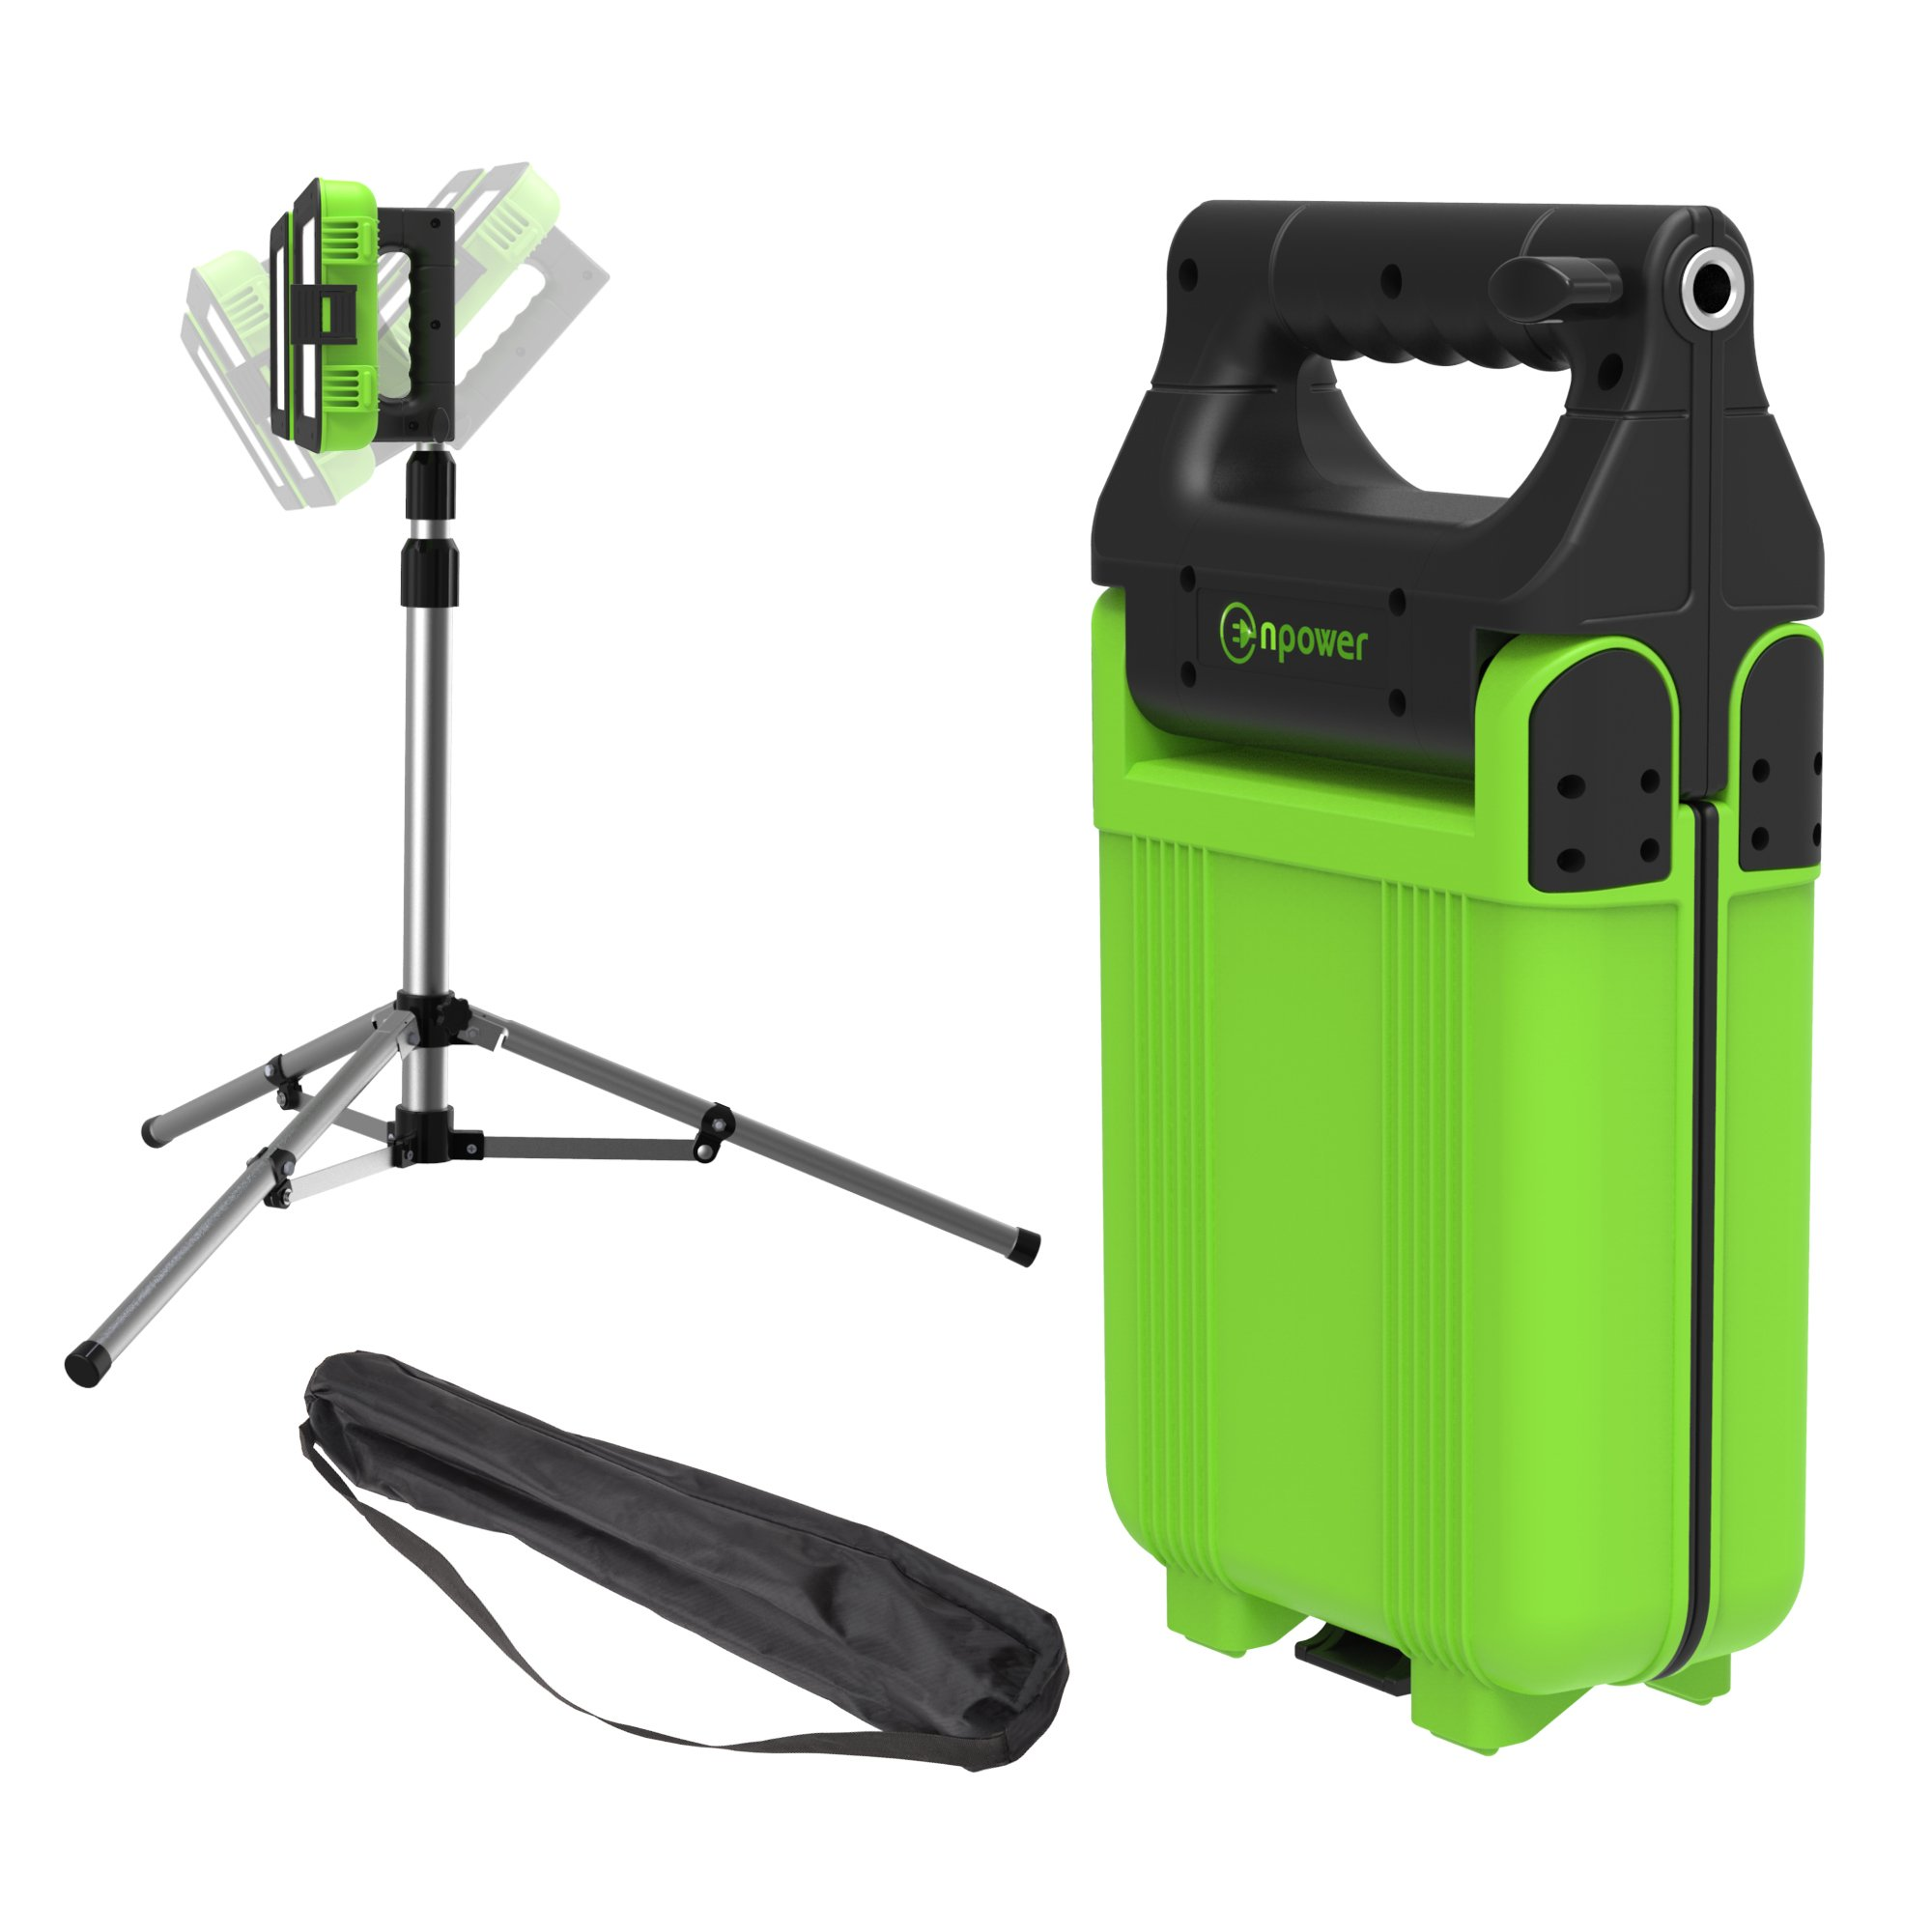 GoGlow LiteBook Bundle - Upgraded 2.0 TRIPOD INCLUDED - 30W Portable Rechargeable Day Light White Light (5000-5500k) Work Light, Camping, Garage or Auto Repair, Emergency (Green) by Enpower (Image #1)